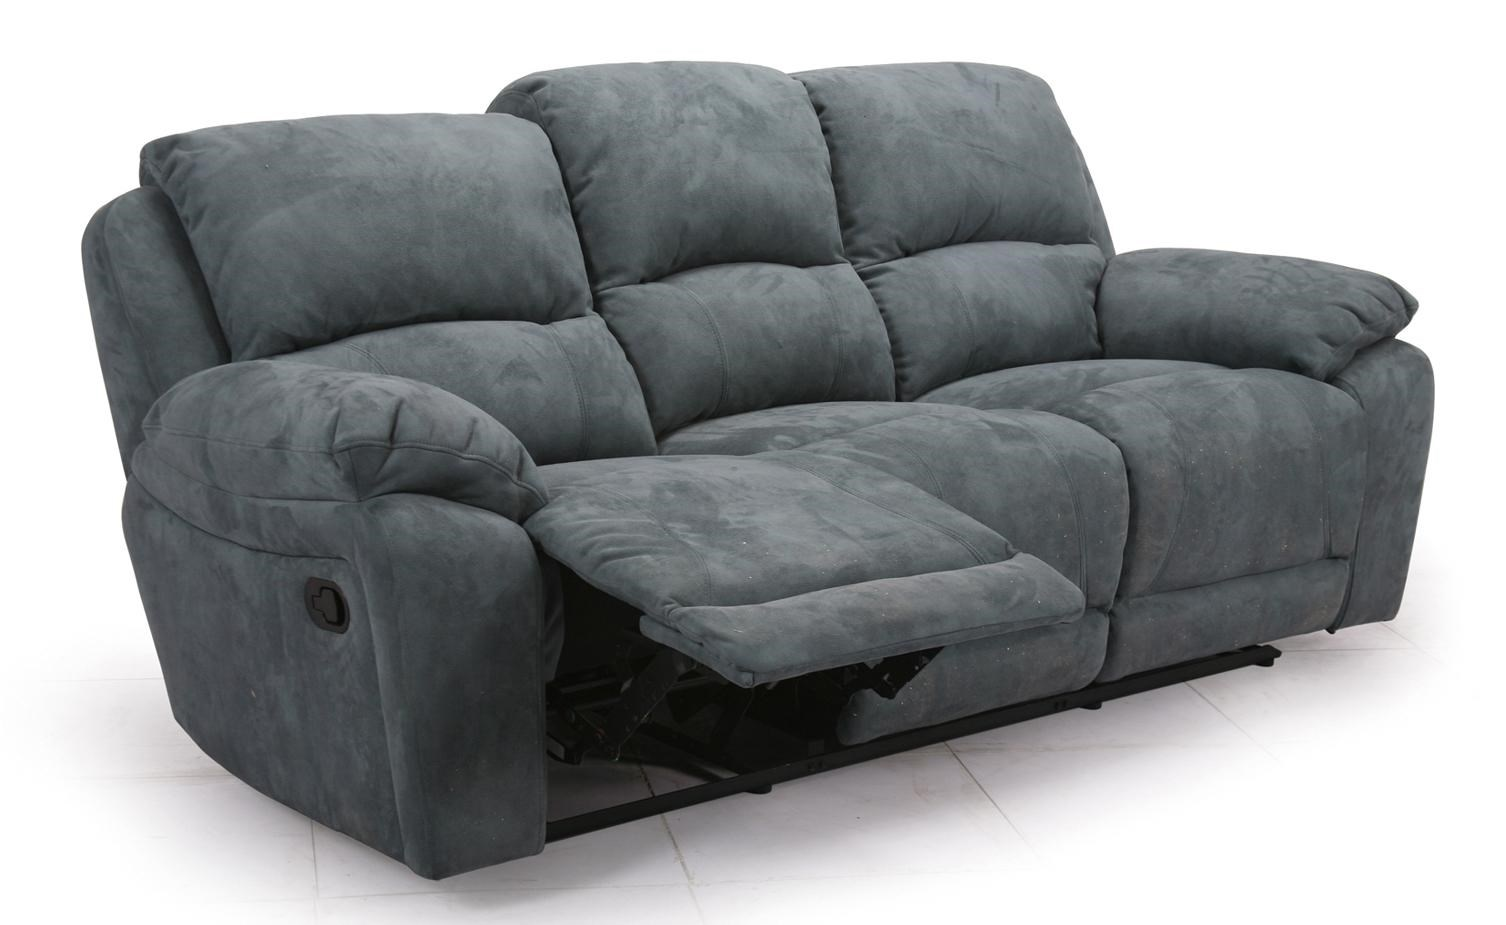 8532 casual double reclining sofa by cheers at westrich furniture appliances